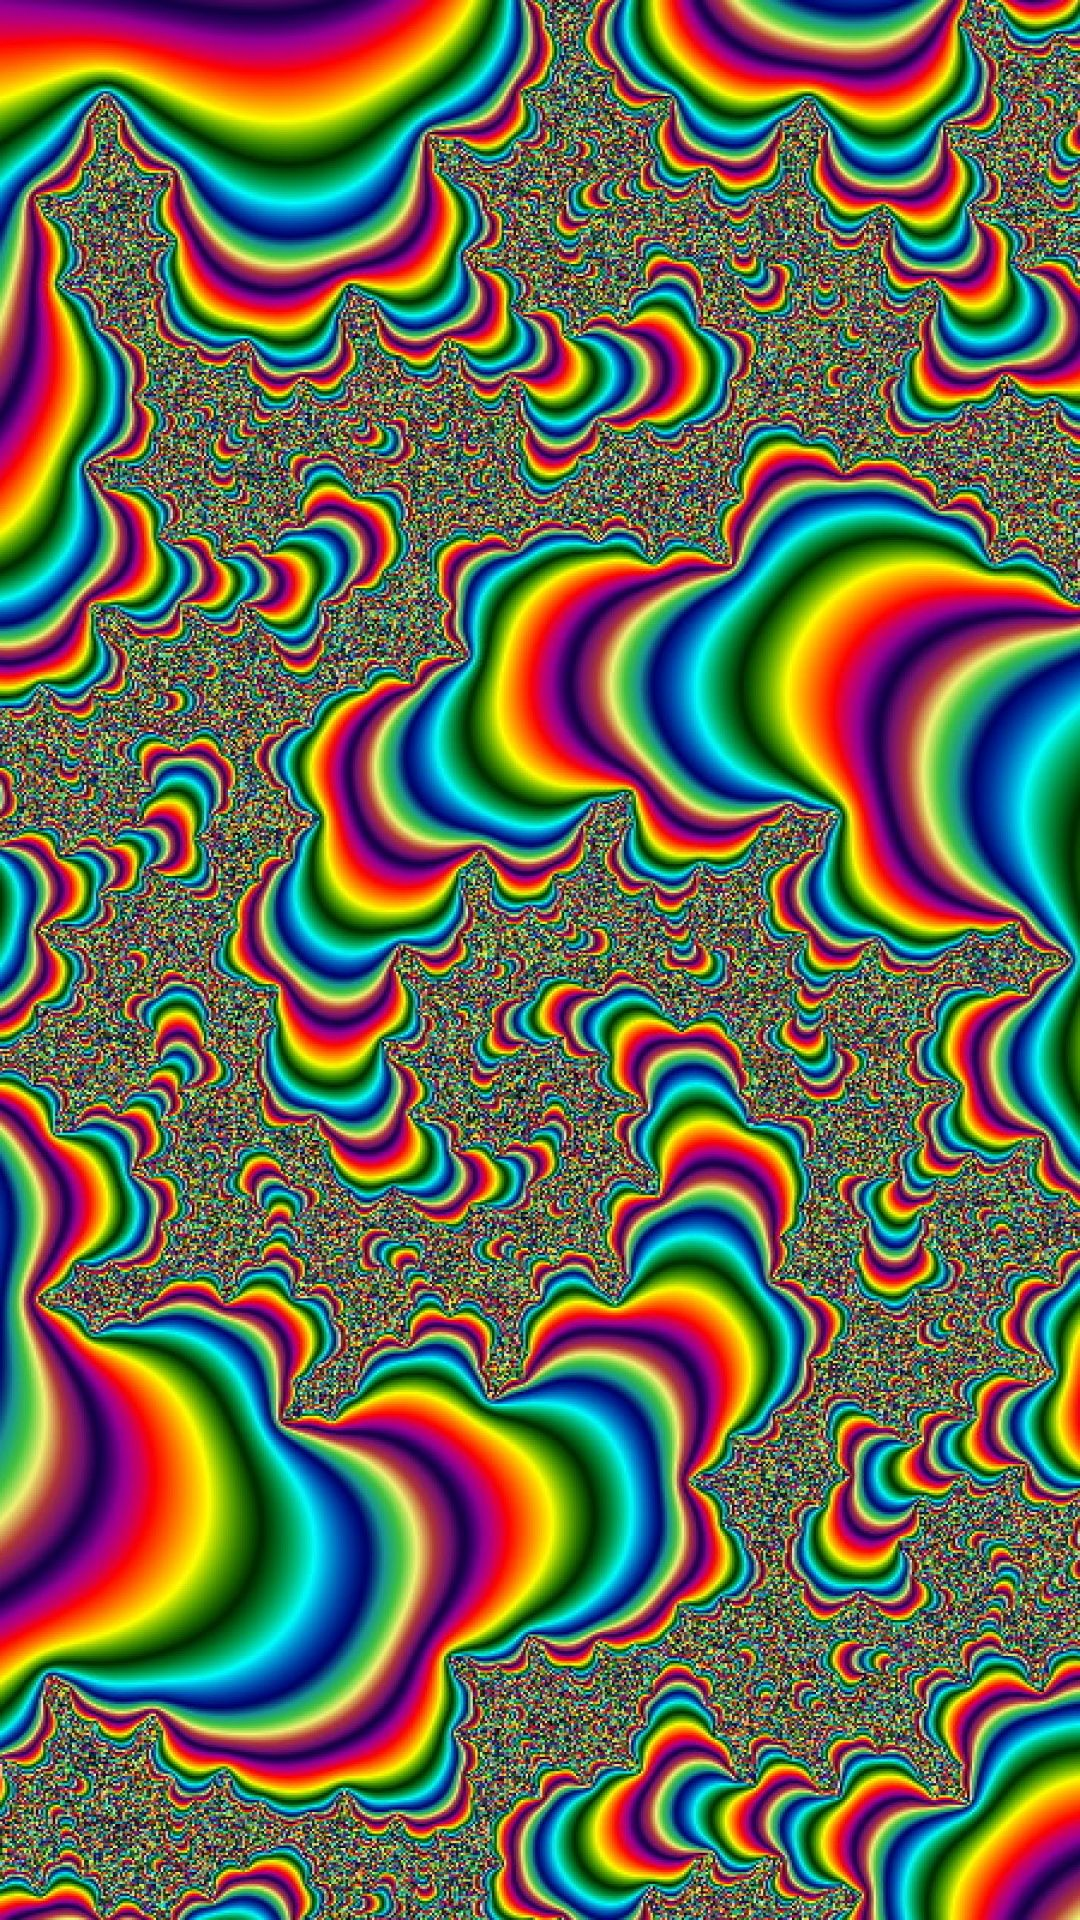 Psychedelic iPhone wallpaper Trippy iphone wallpaper